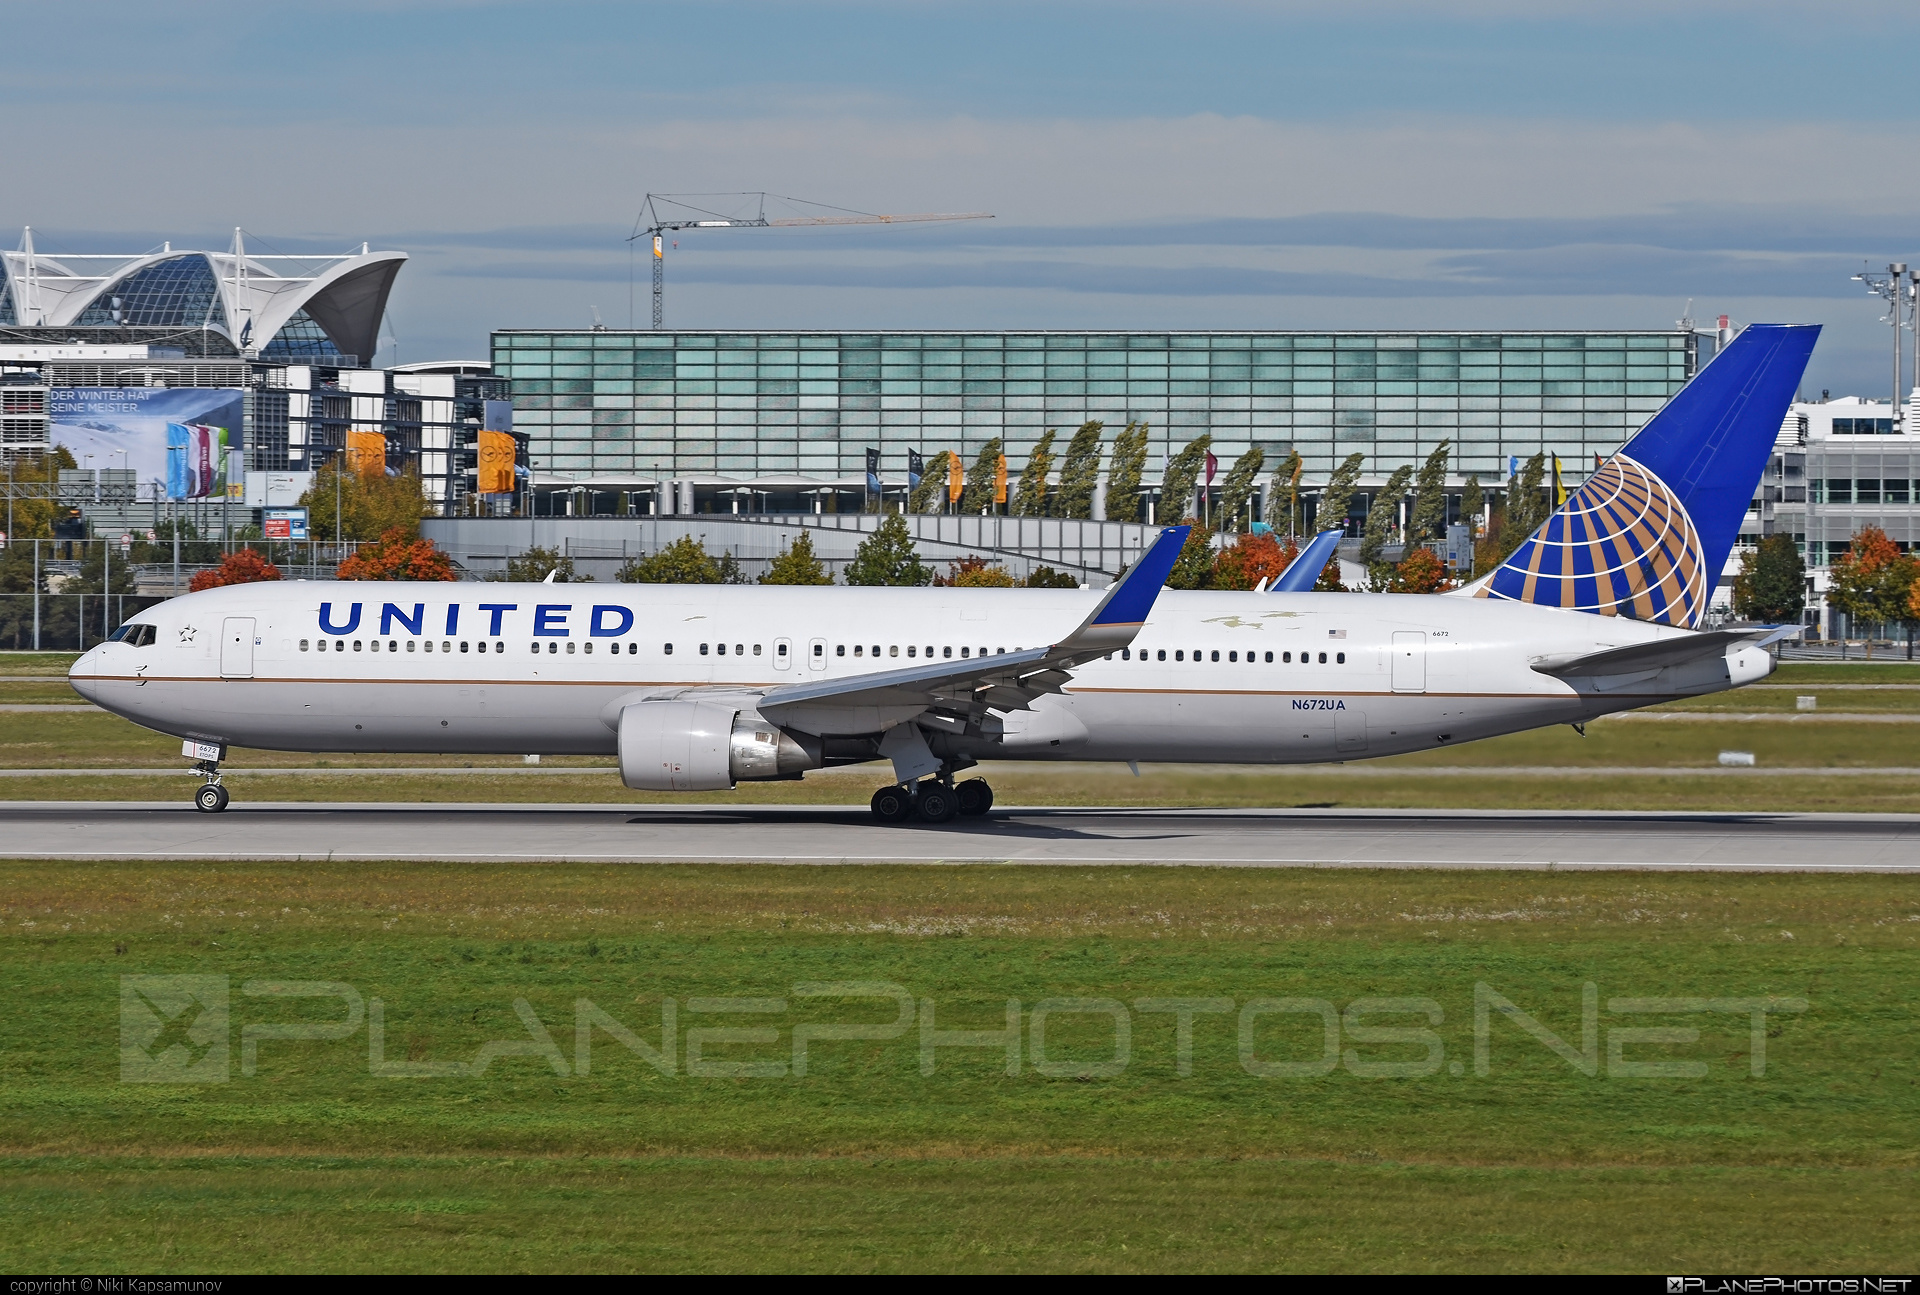 Boeing 767-300ER - N672UA operated by United Airlines #b767 #b767er #boeing #boeing767 #unitedairlines